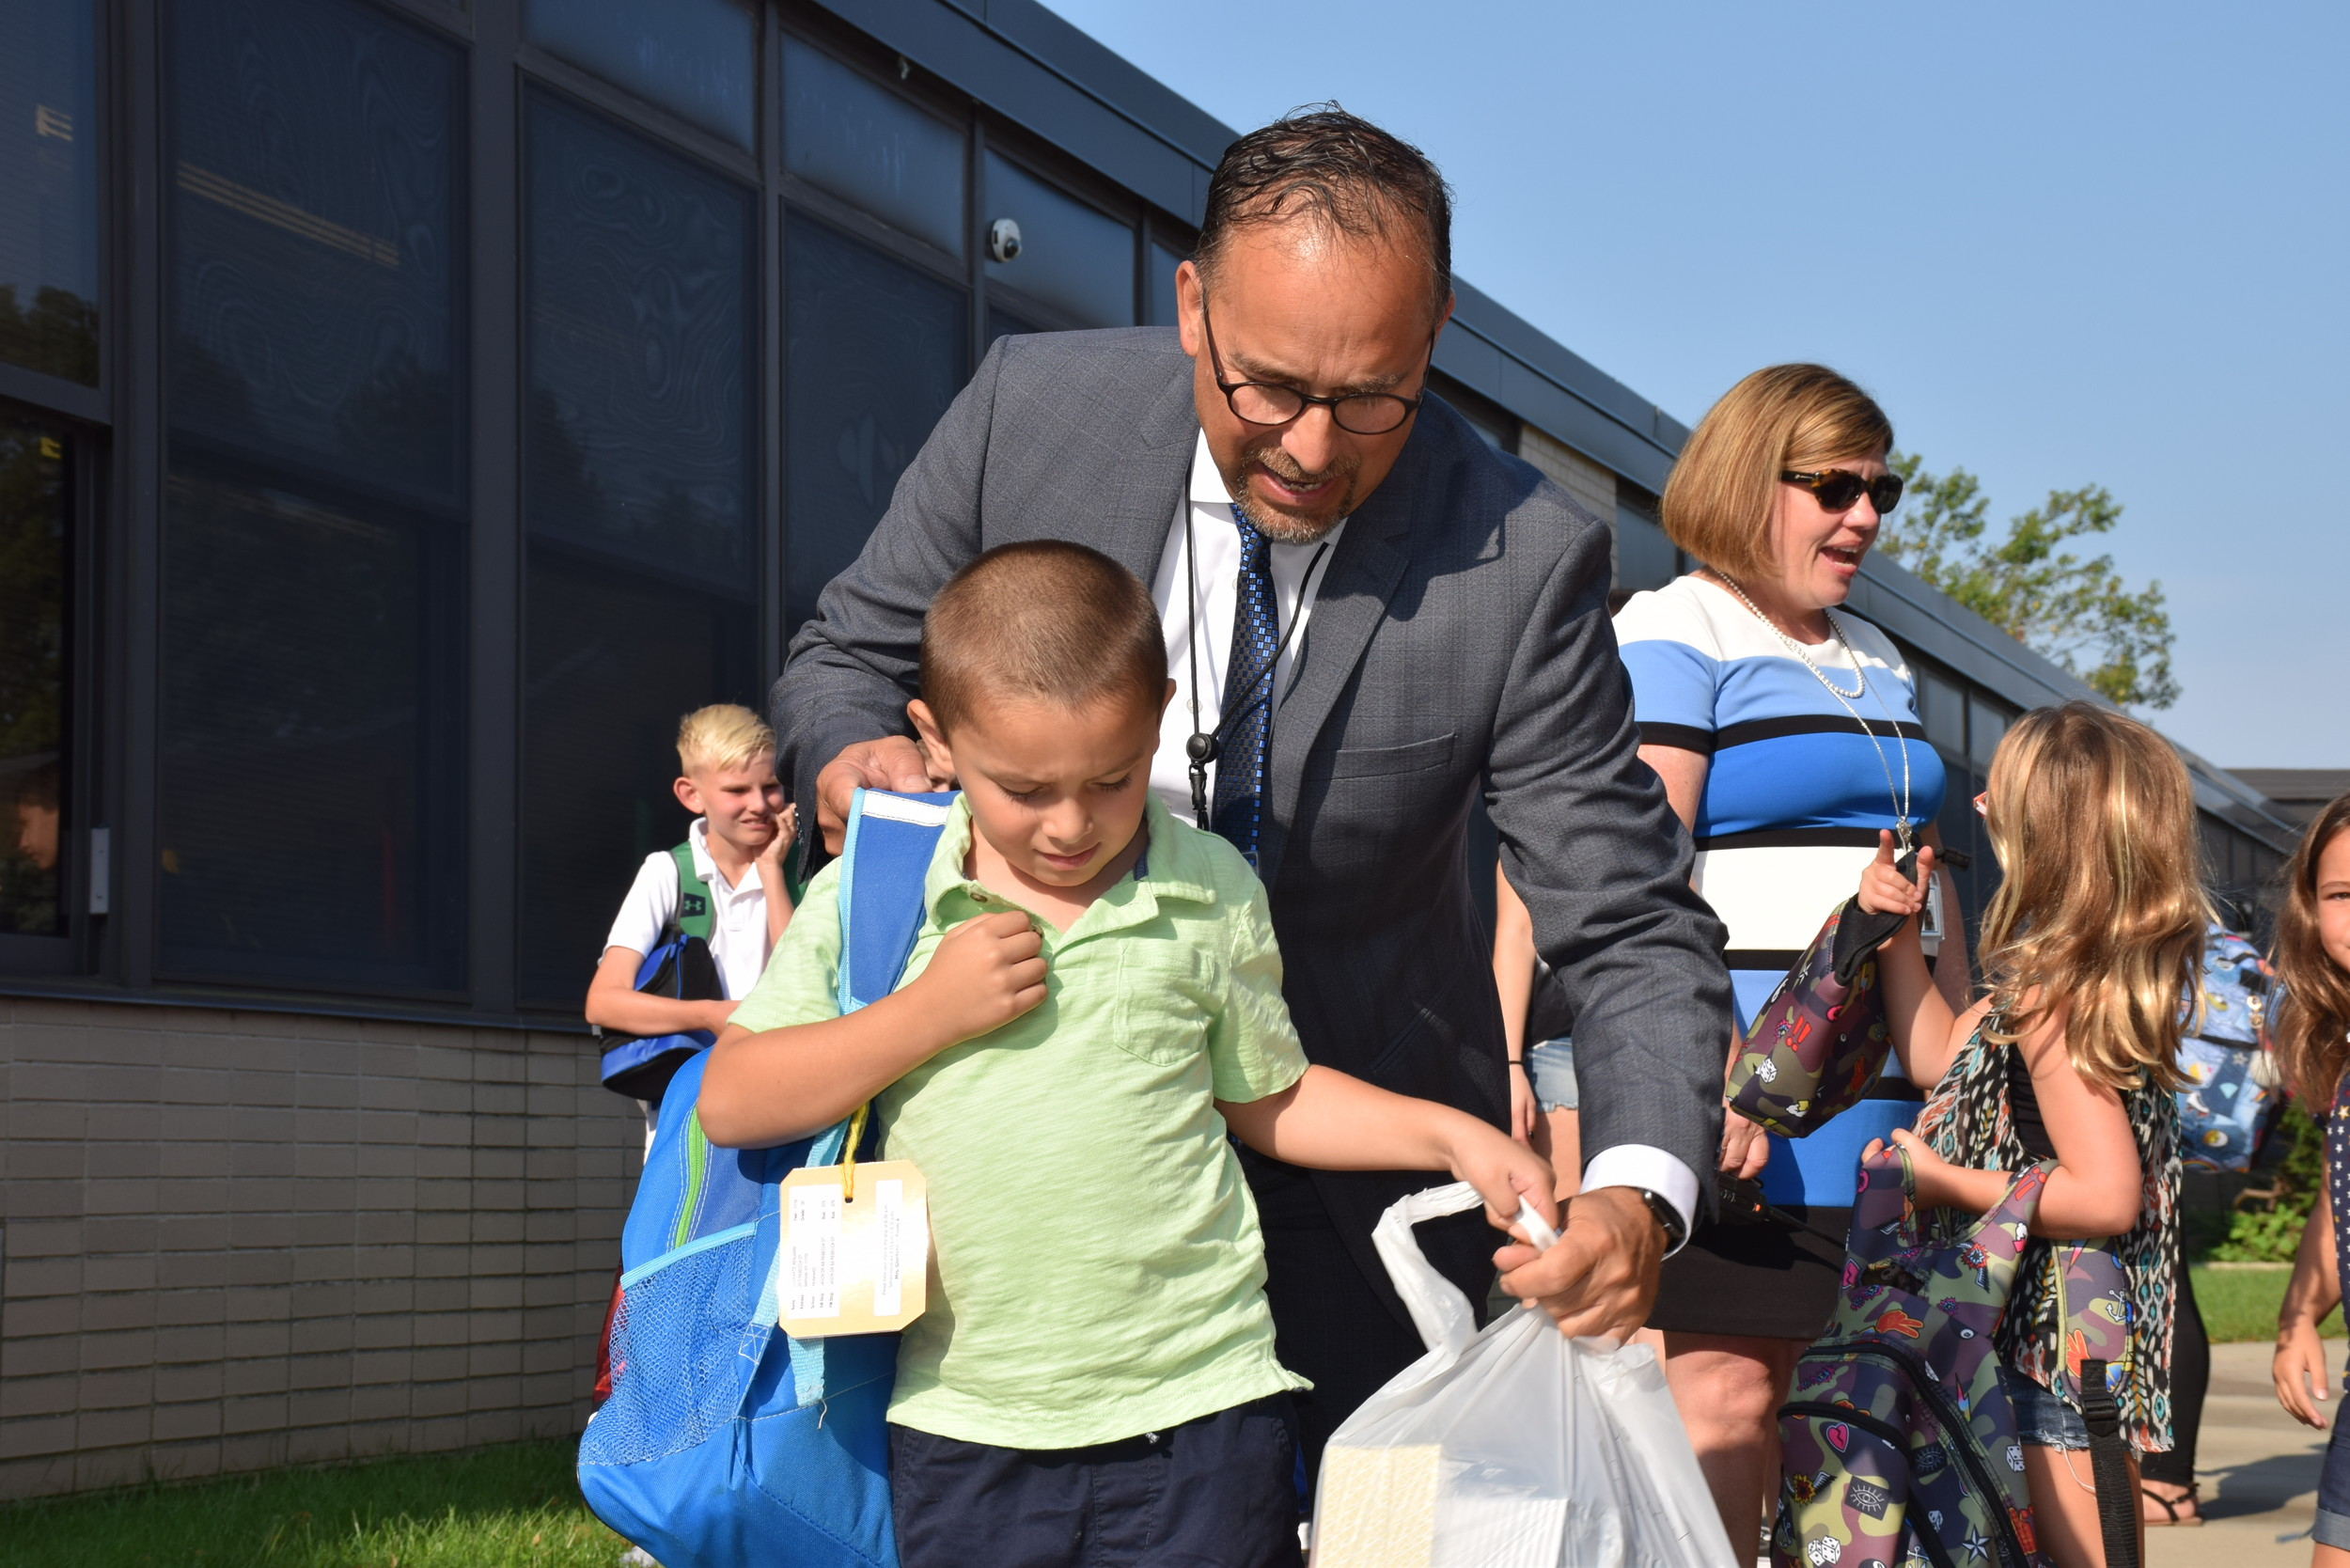 Superintendent of Schools Dr. Joseph Famularo and Principal Patricia Castine assisted students disembarking the school buses with backpacks and lunches.